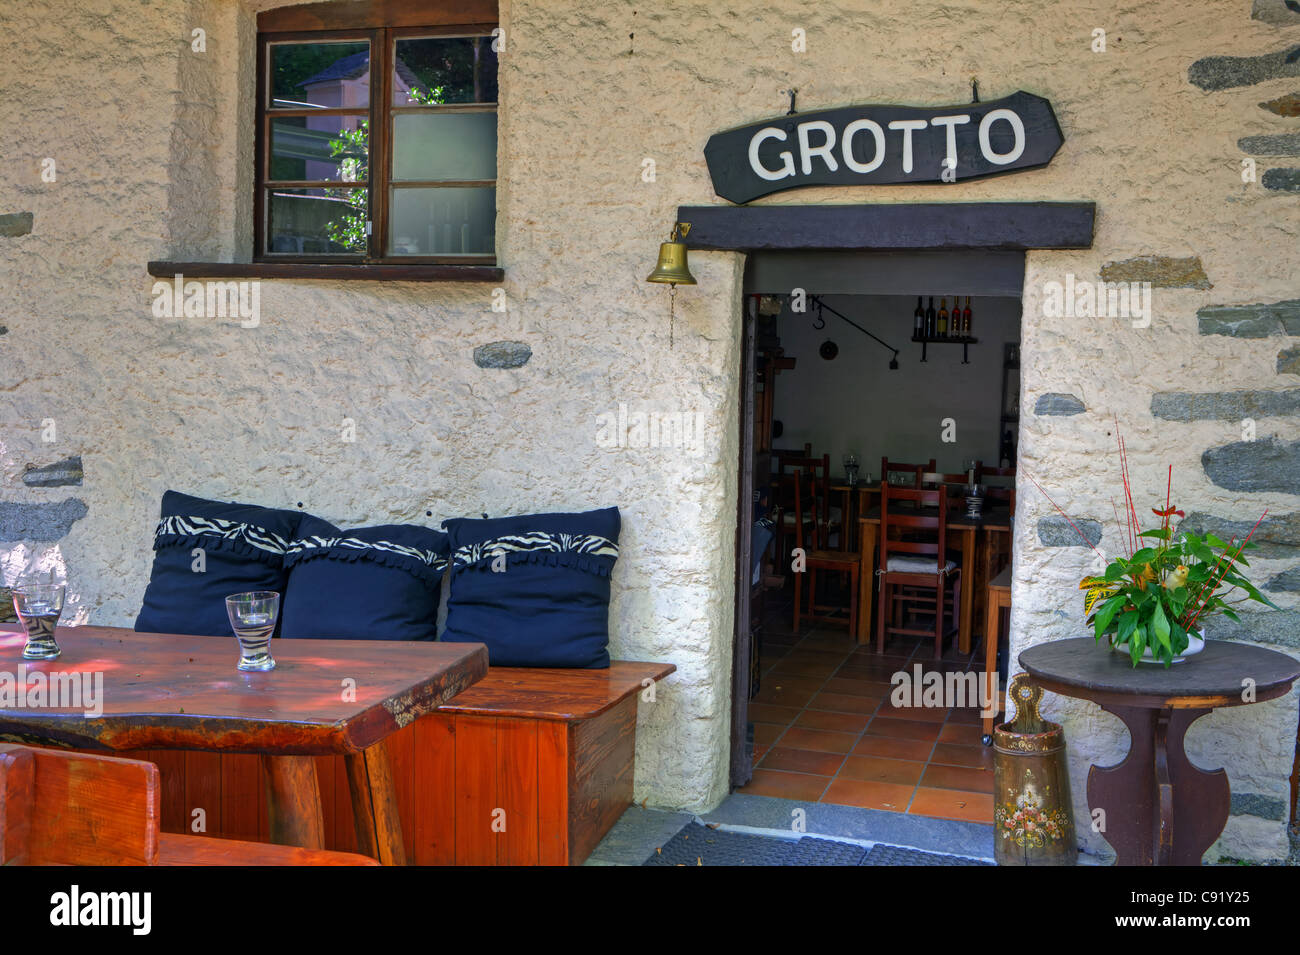 simple patio of a typical Ticino Grotto - Stock Image